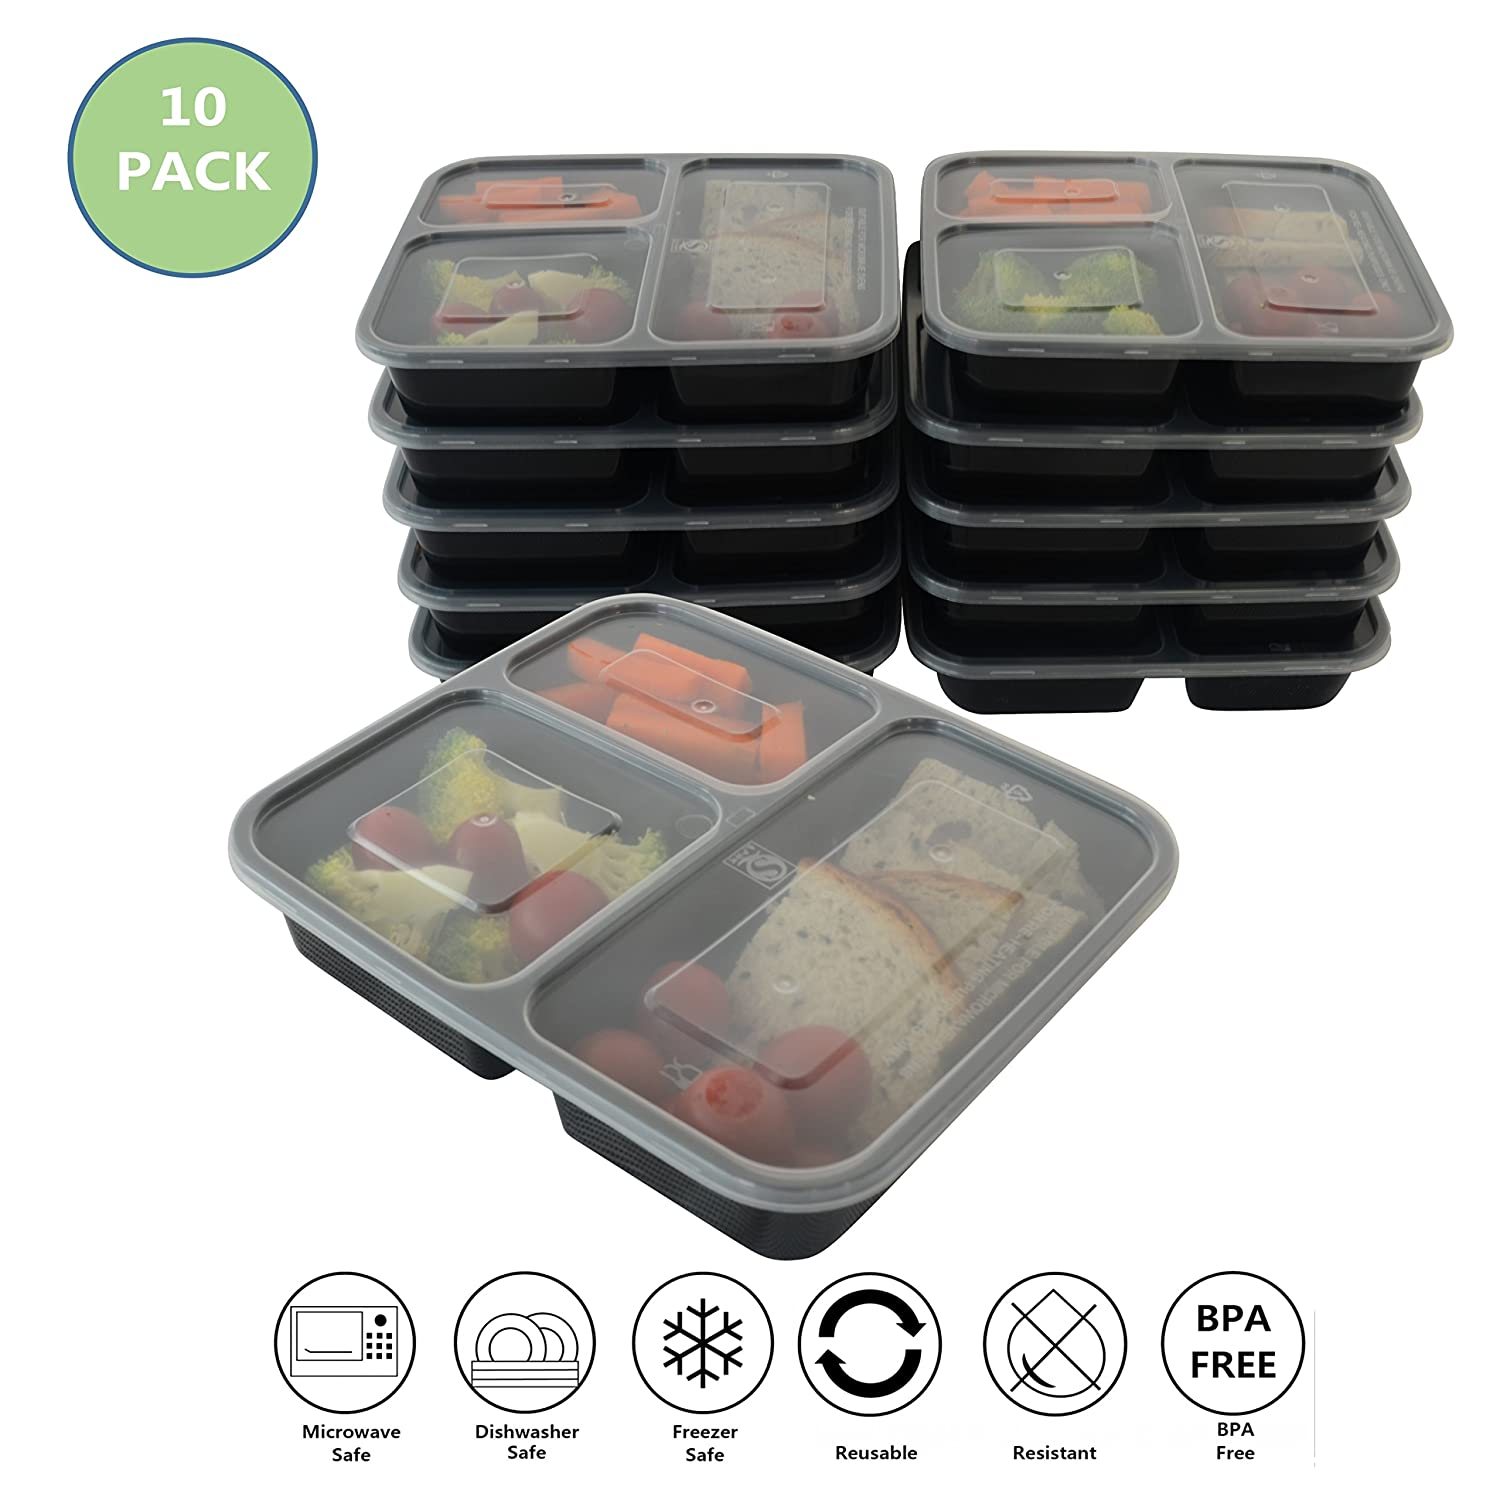 Prefer Green 3-Compartment Bento Box / Durable Plastic Lunch Boxes Sets, Meal Prep, Portion Control Containers,Food Storage (10 Pack)